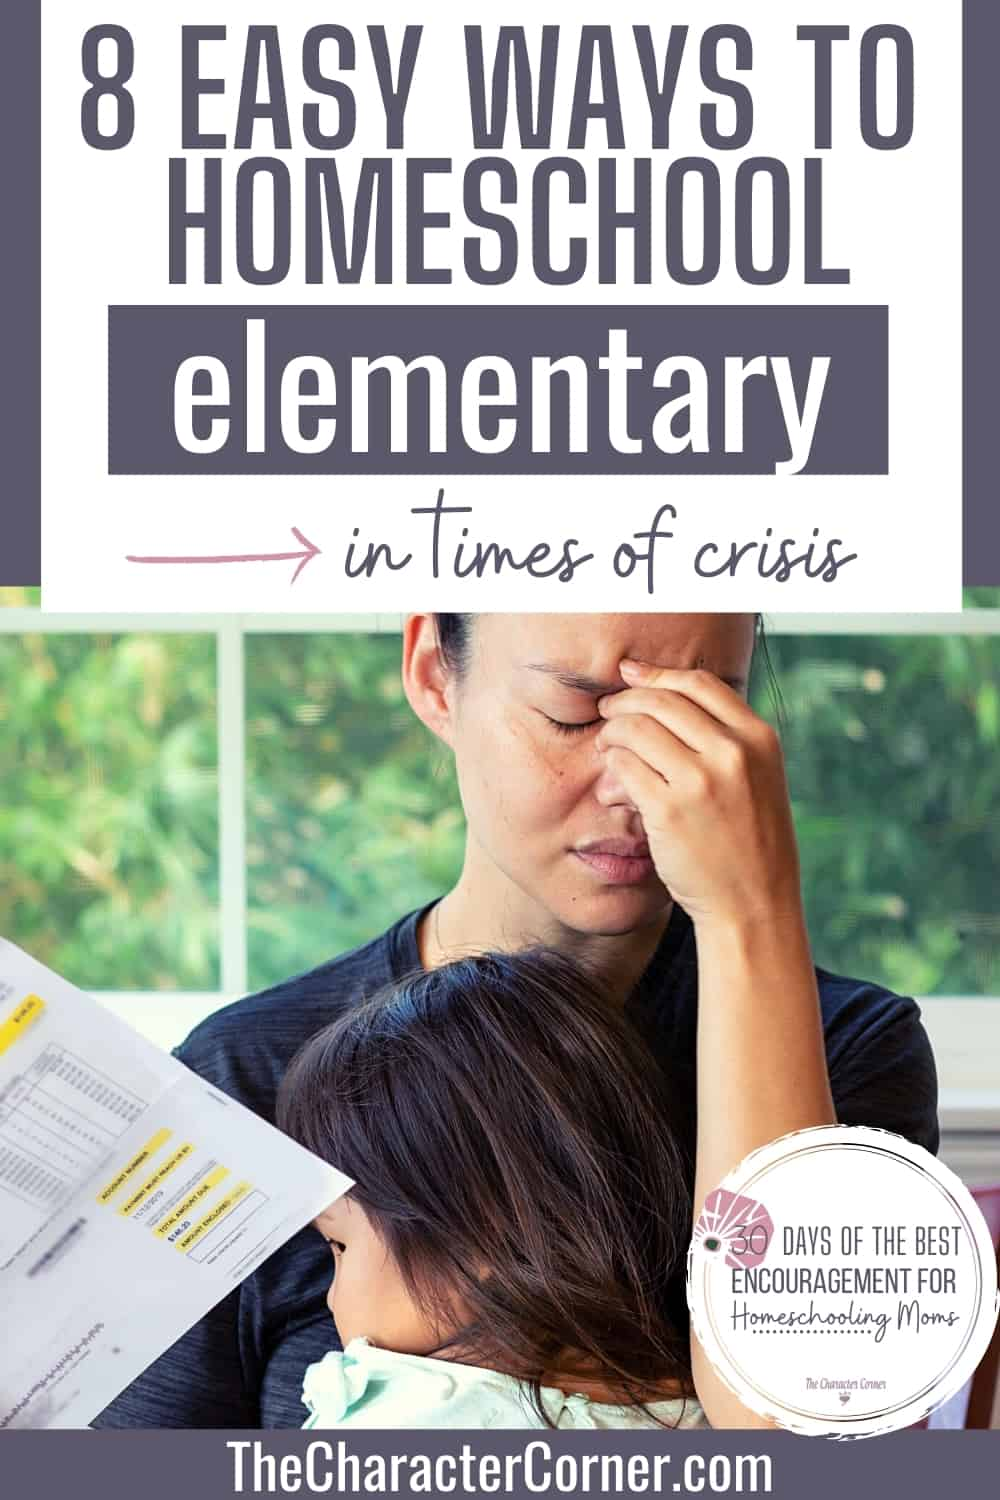 8 Easy Ways To Homeschool Elementary In Times Of Crisis